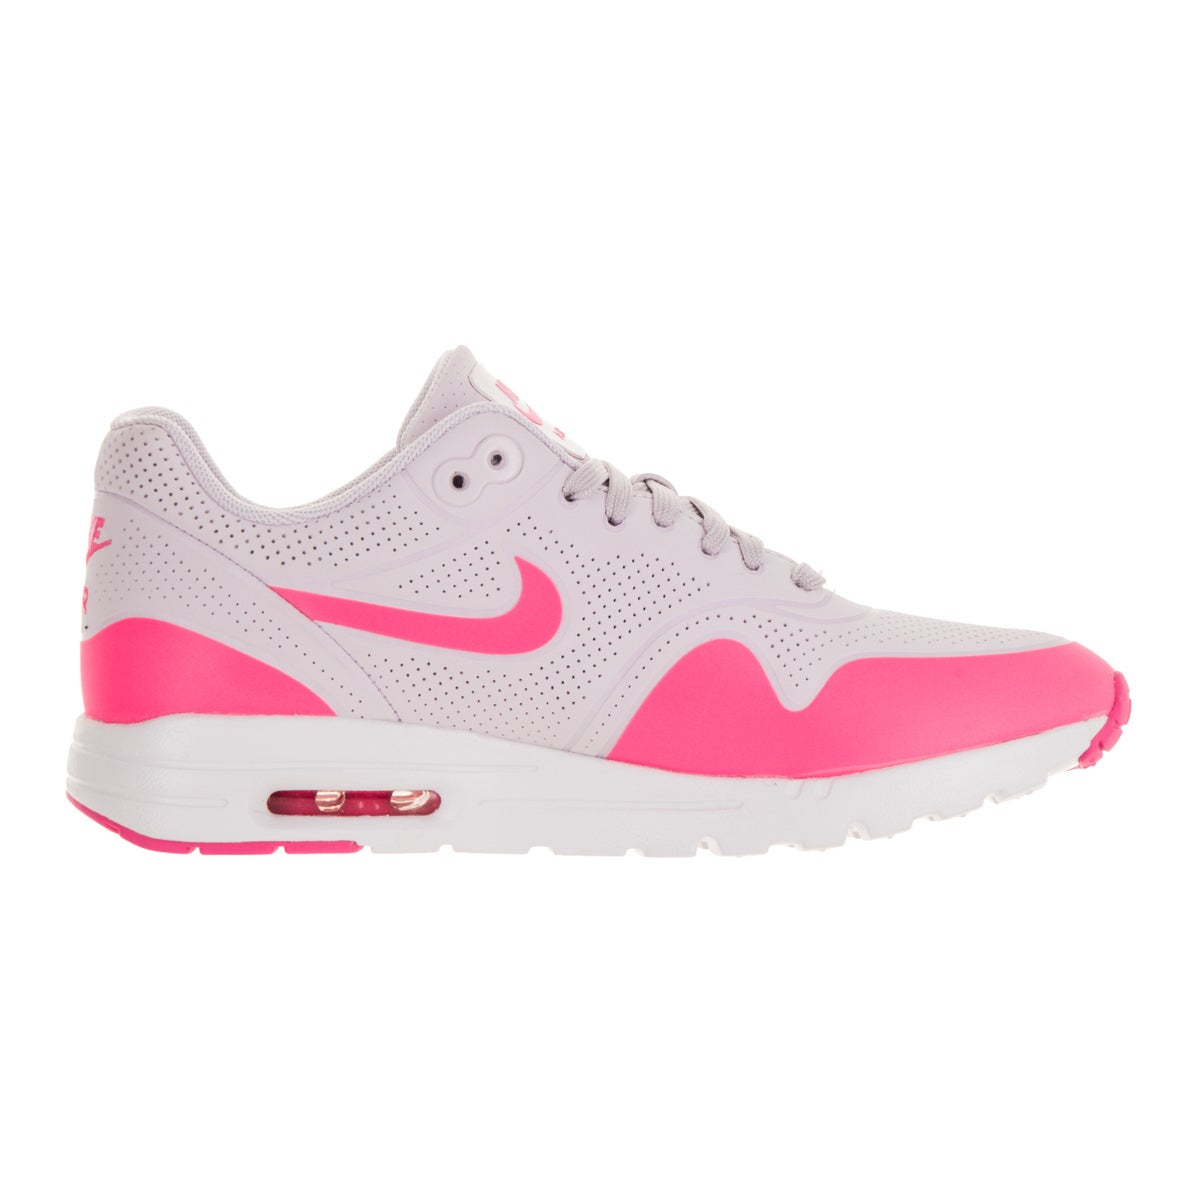 best website 7c968 1f76d Shop Nike Women s Air Max 1 Ultra Moire Bleached Lilac Pink Blast White  Running Shoe - Free Shipping Today - Overstock - 13343861